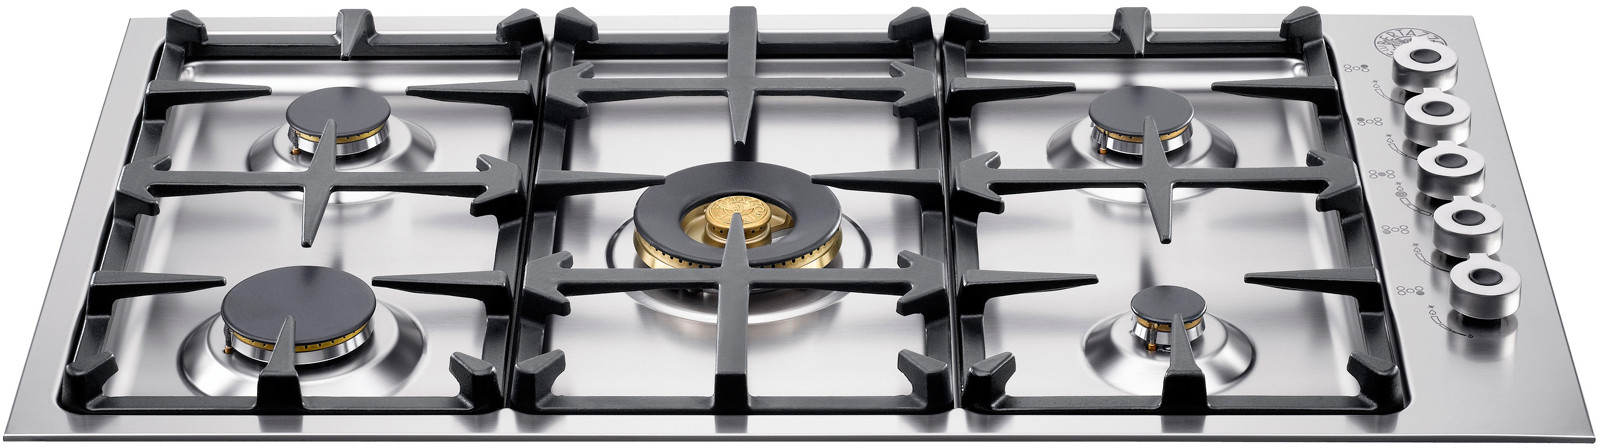 Bertazzoni Qb36500x 36 Inch Gas Cooktop With 5 Sealed Burners 18 000 Btu Br Burner Continuous Grates Electronic Ignition And Low Profile